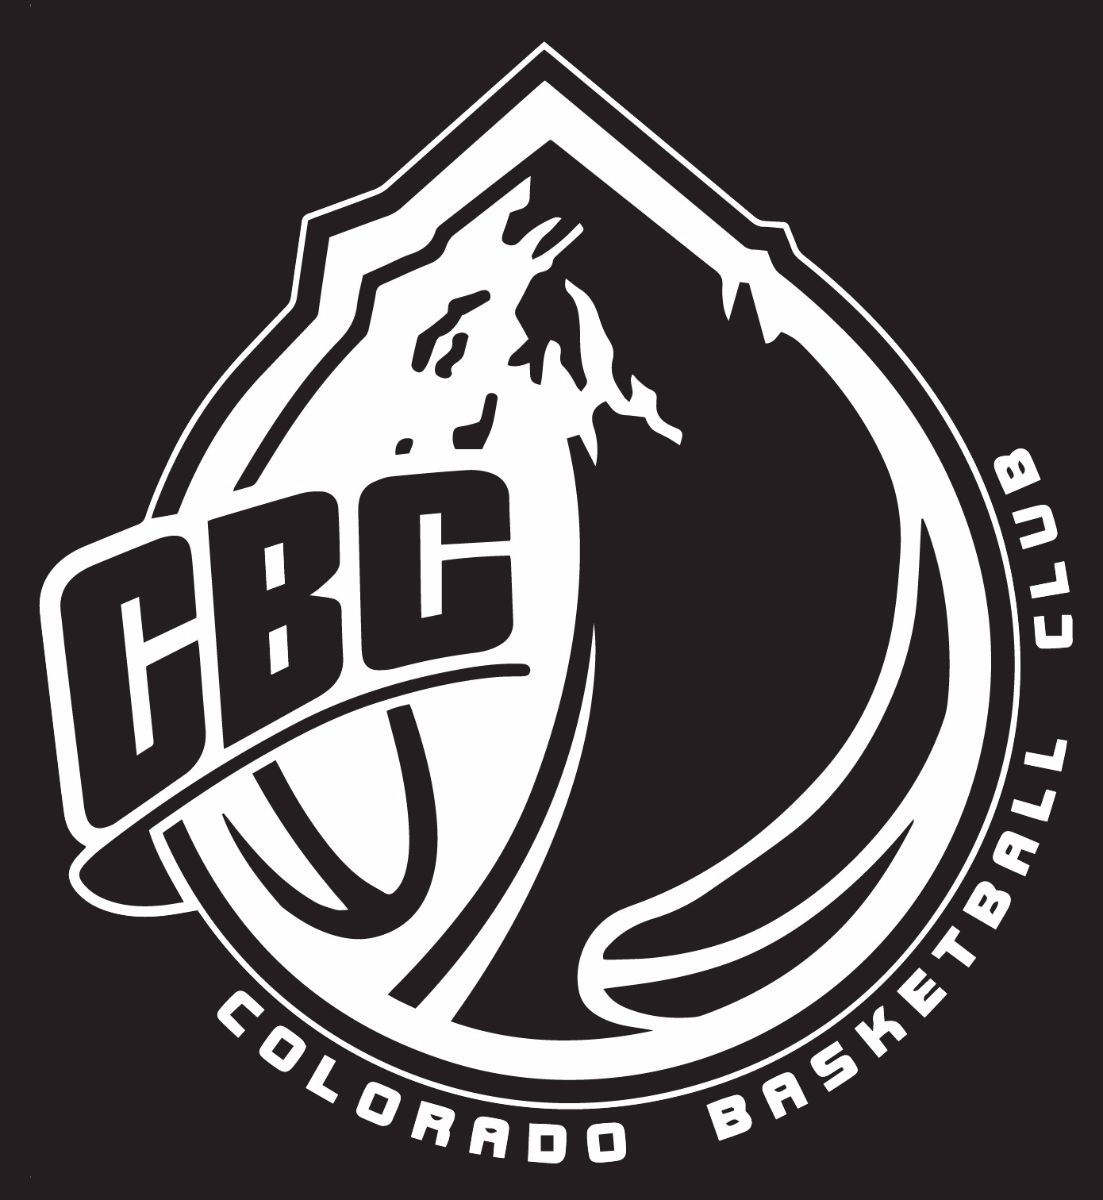 Colorado Basketball: Find & Connect With Local Sports Teams